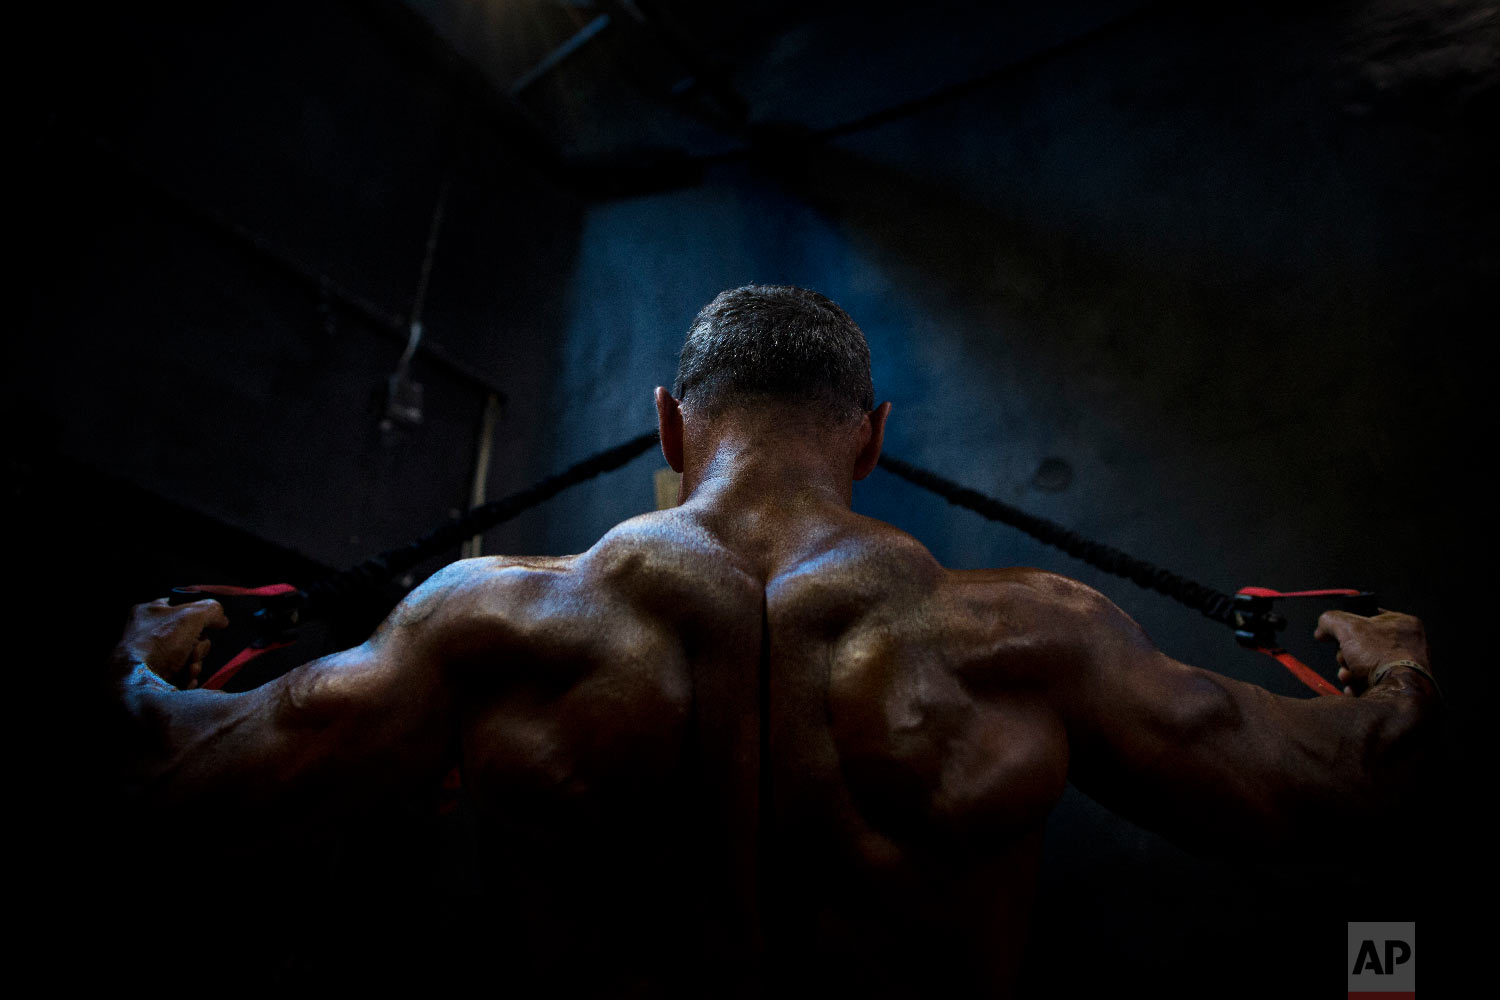 A contestant exercises backstage during the National Amateur Body Builders' Association competition in Tel Aviv, Israel on Oct. 18, 2018. (AP Photo/Oded Balilty)